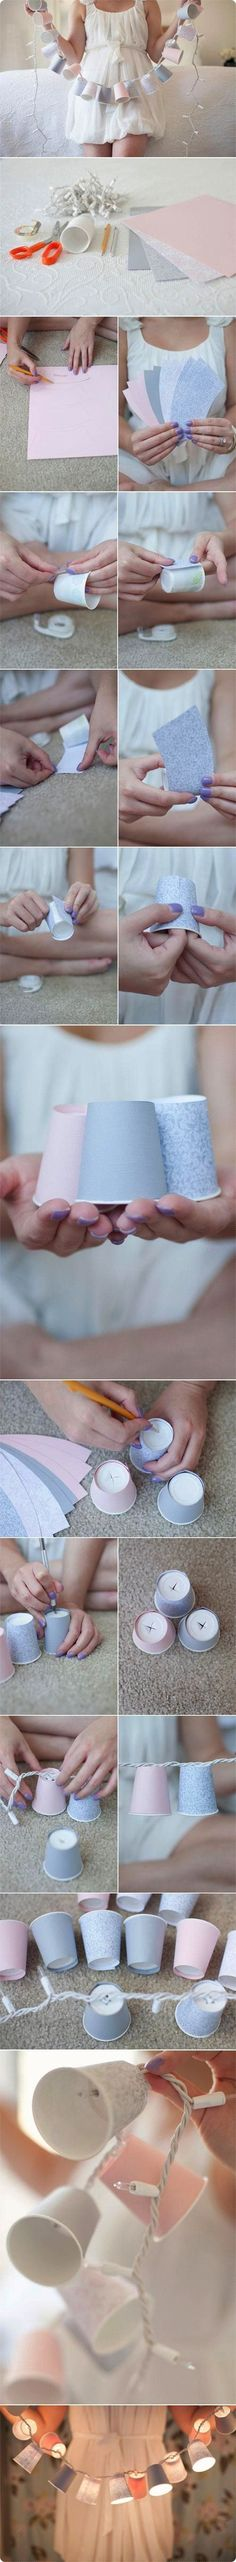 DIY Decorative Paper Cups Garland Lights...for her Tangled party?